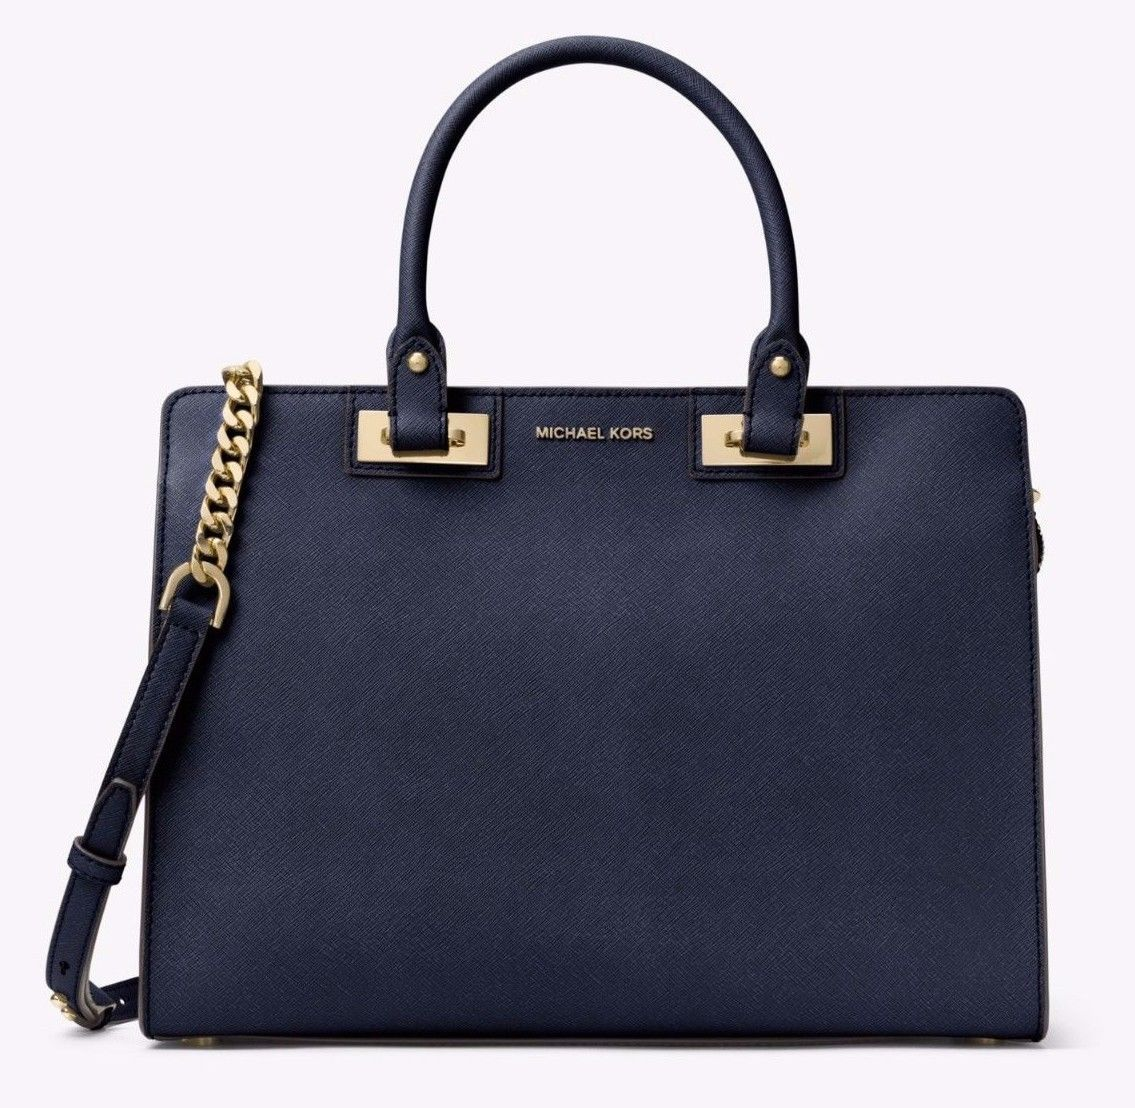 NWT MICHAEL MICHAEL KORS Quinn Large Saffiano Leather Satchel Navy $378